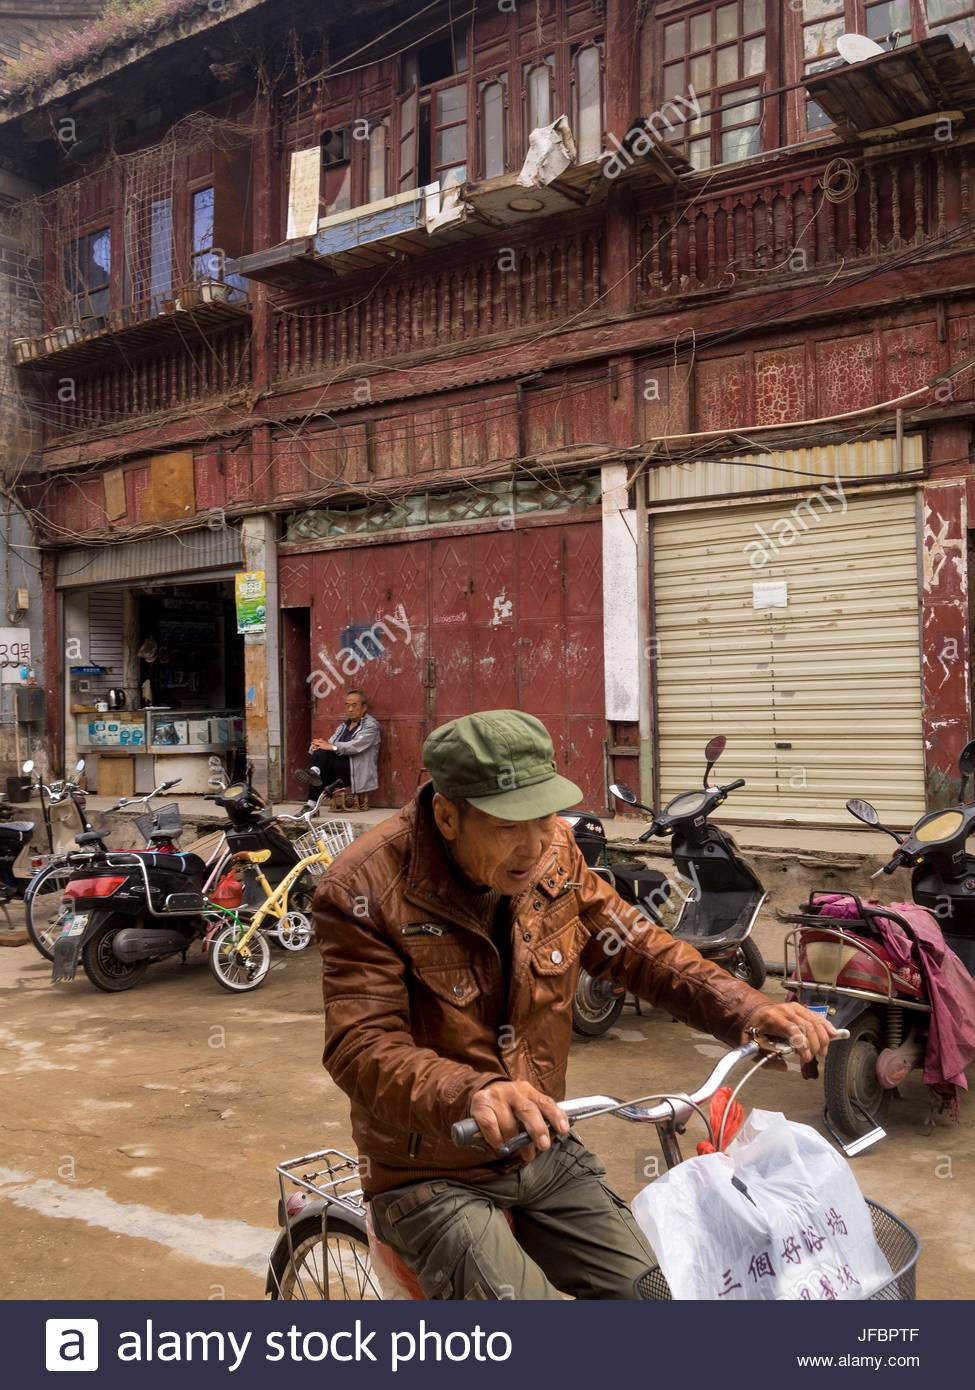 A man cycles past old dilapidated buildings on Guanghua Street. - Stock Image